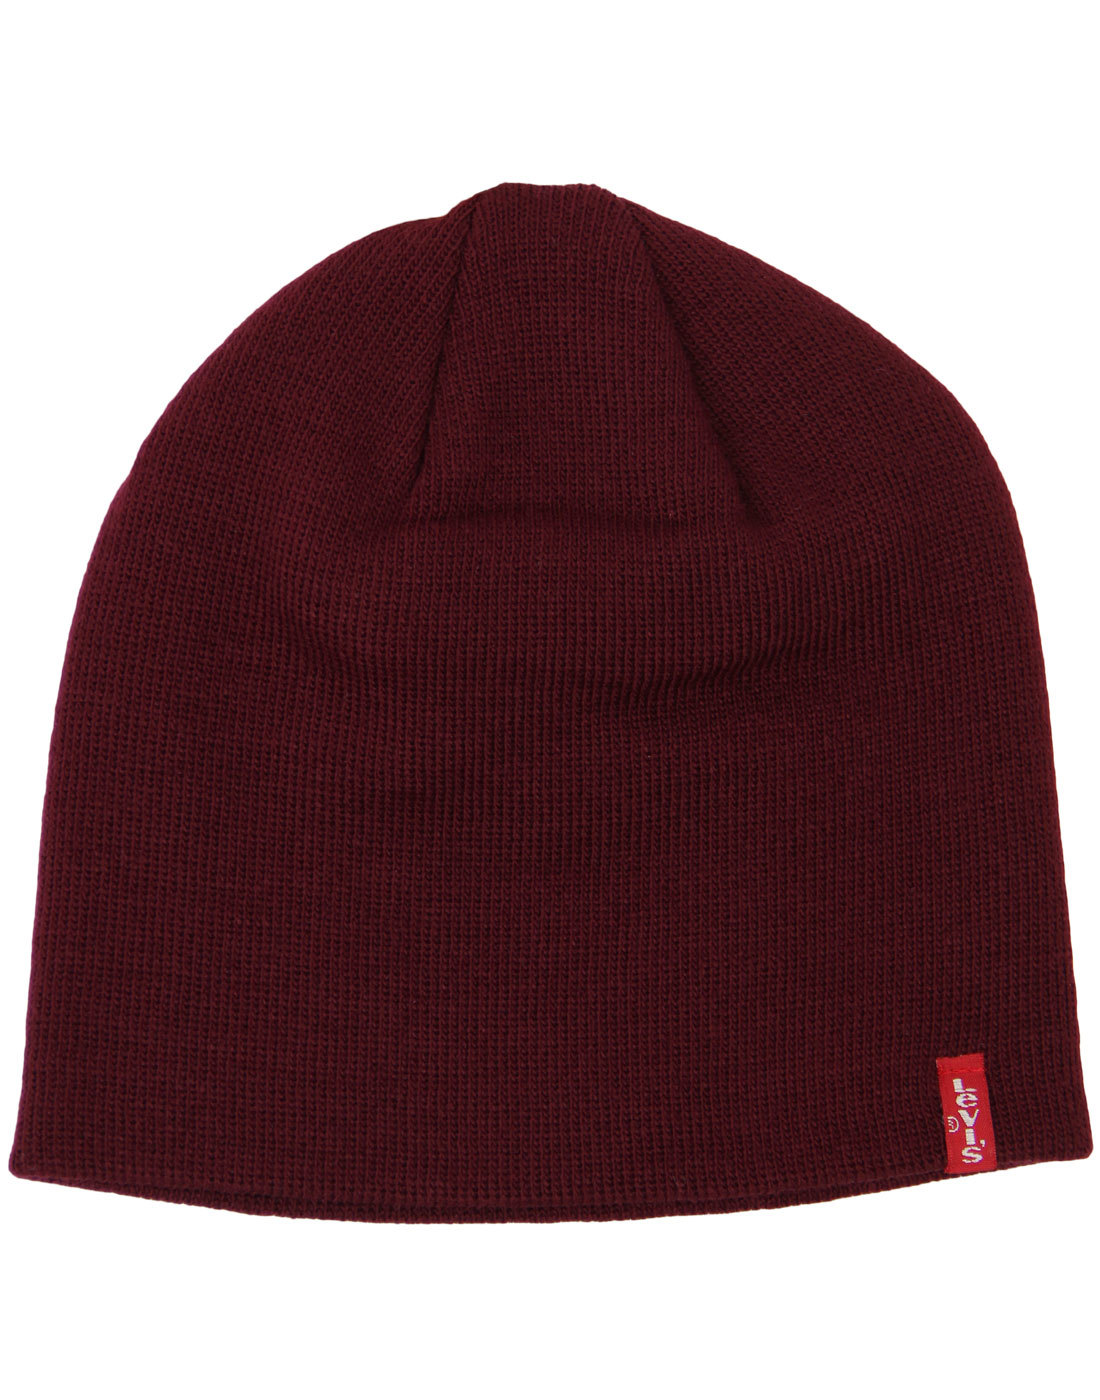 LEVI'S® Retro 1970s Indie Knitted Beanie Hat (DB)